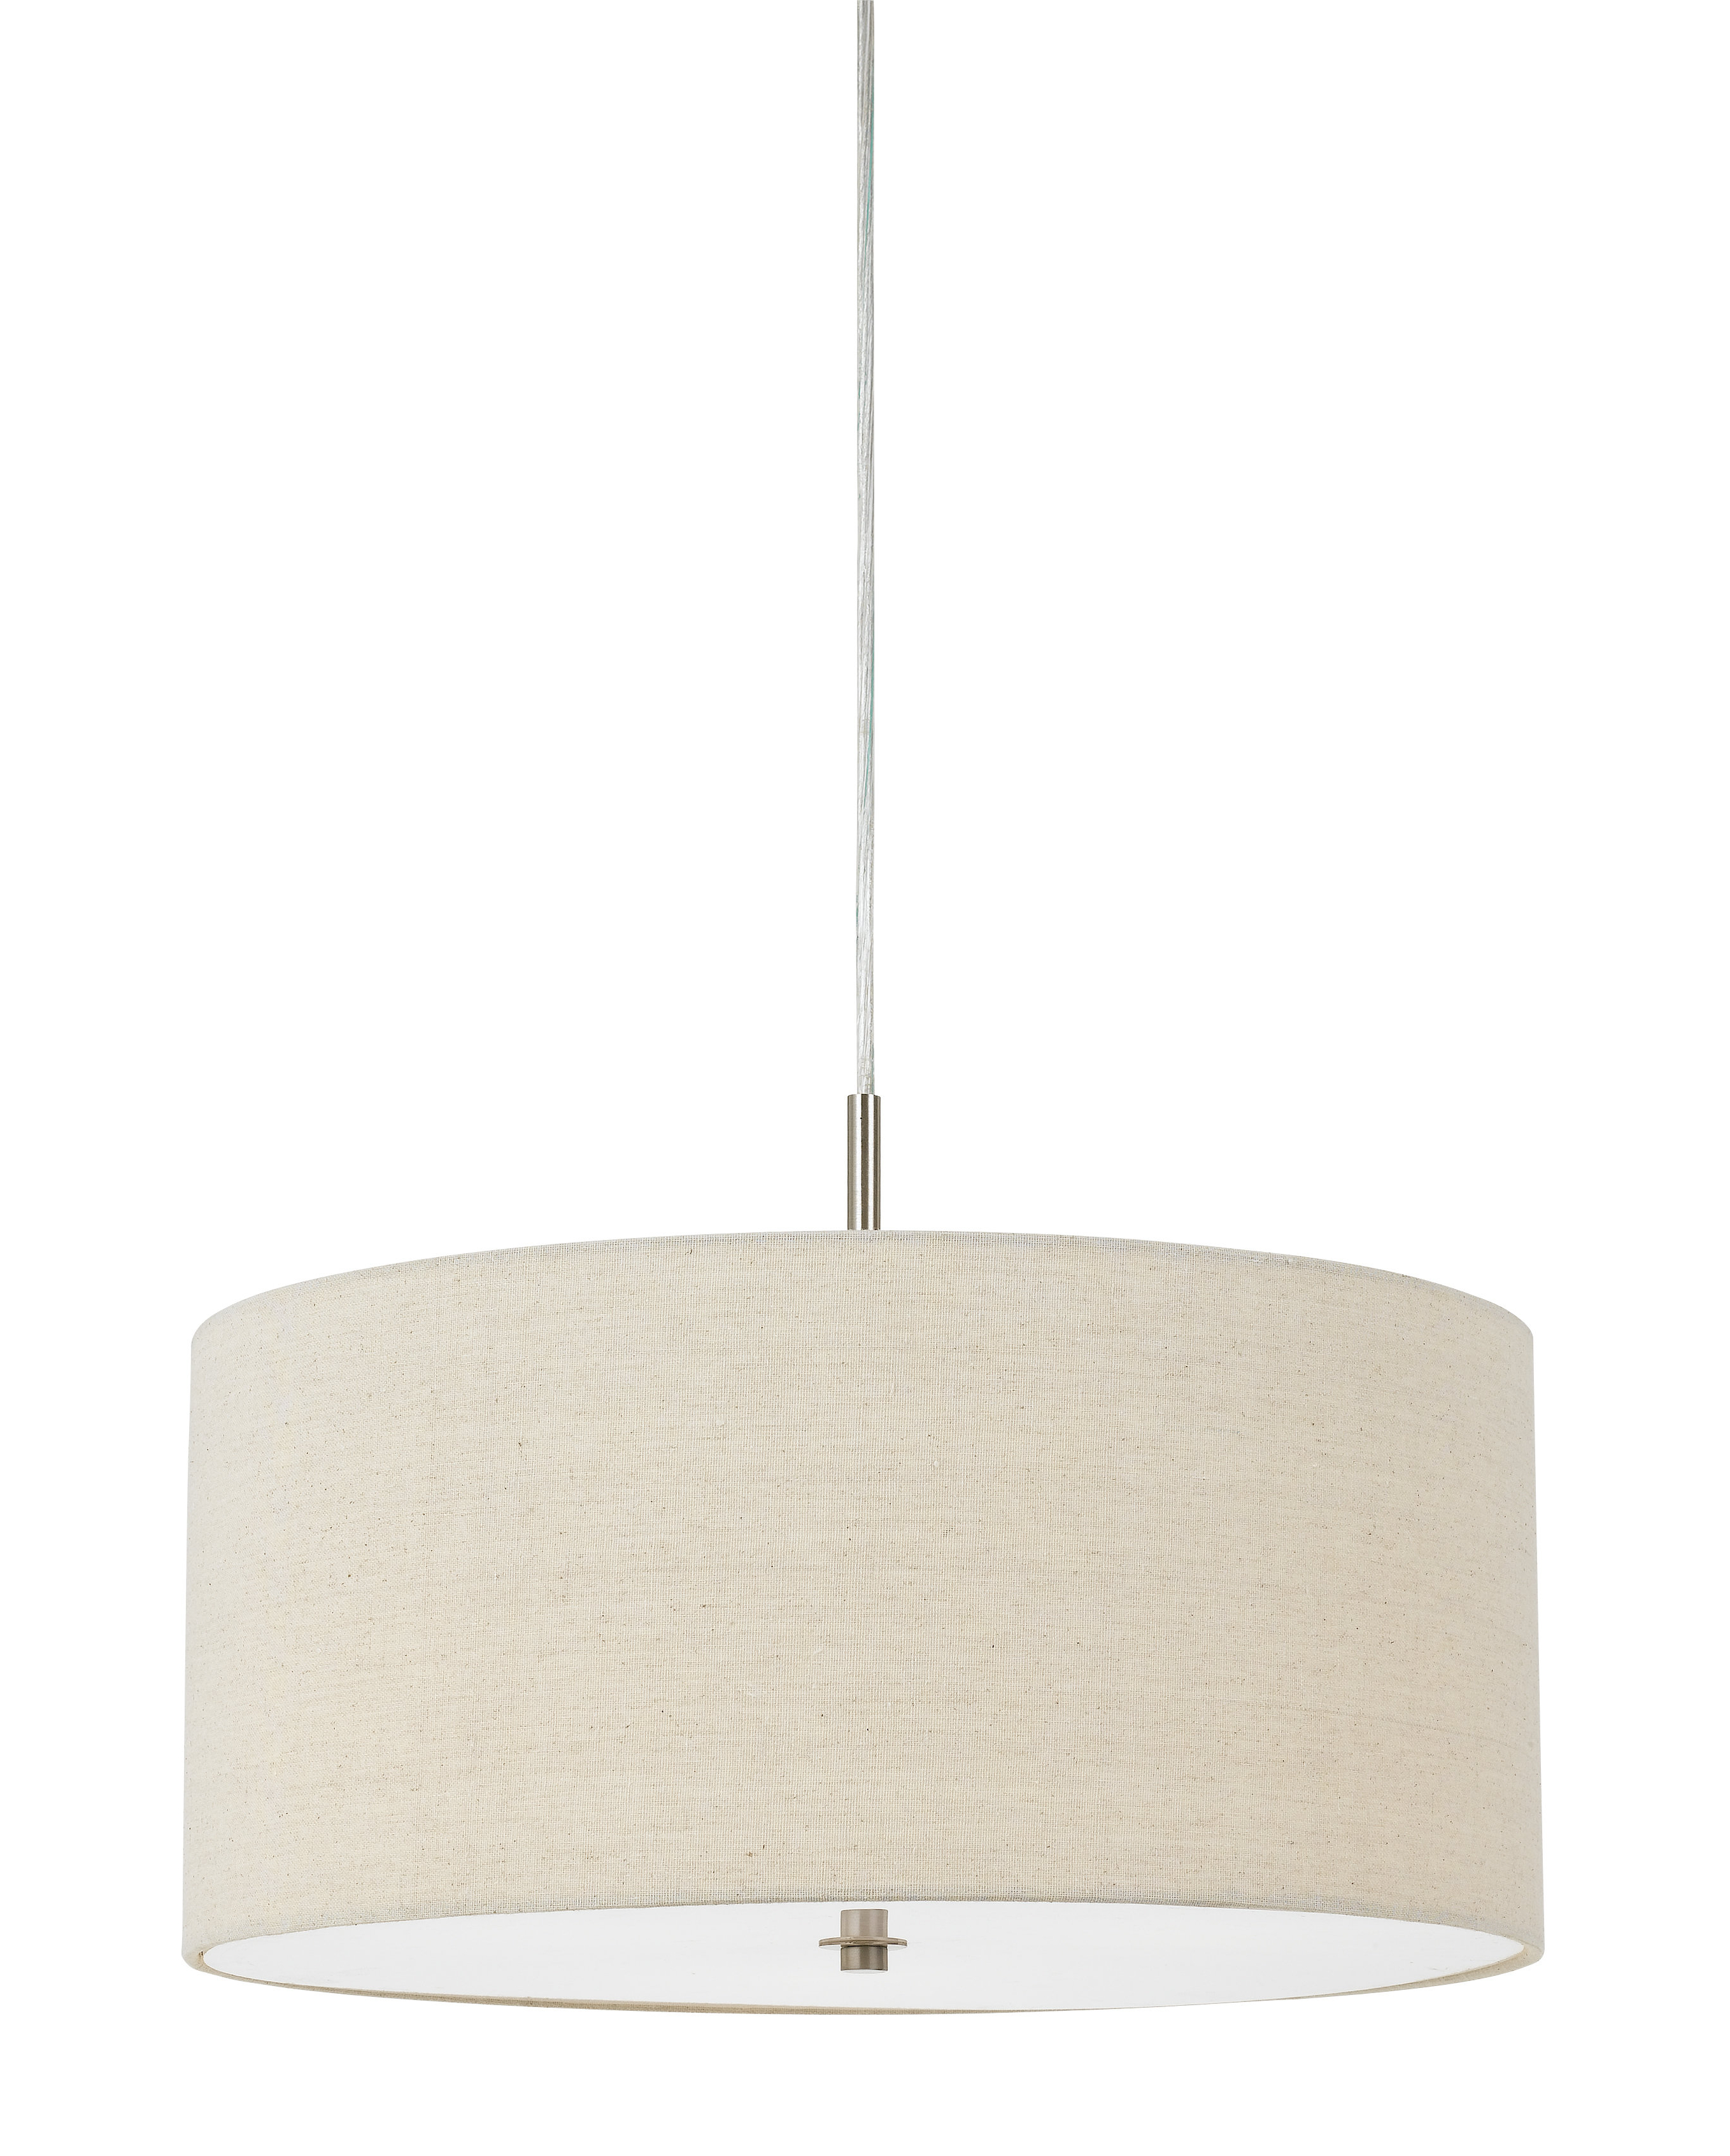 Latest Tristian 3 Light Drum Chandelier Throughout Kasey 3 Light Single Drum Pendants (View 11 of 25)